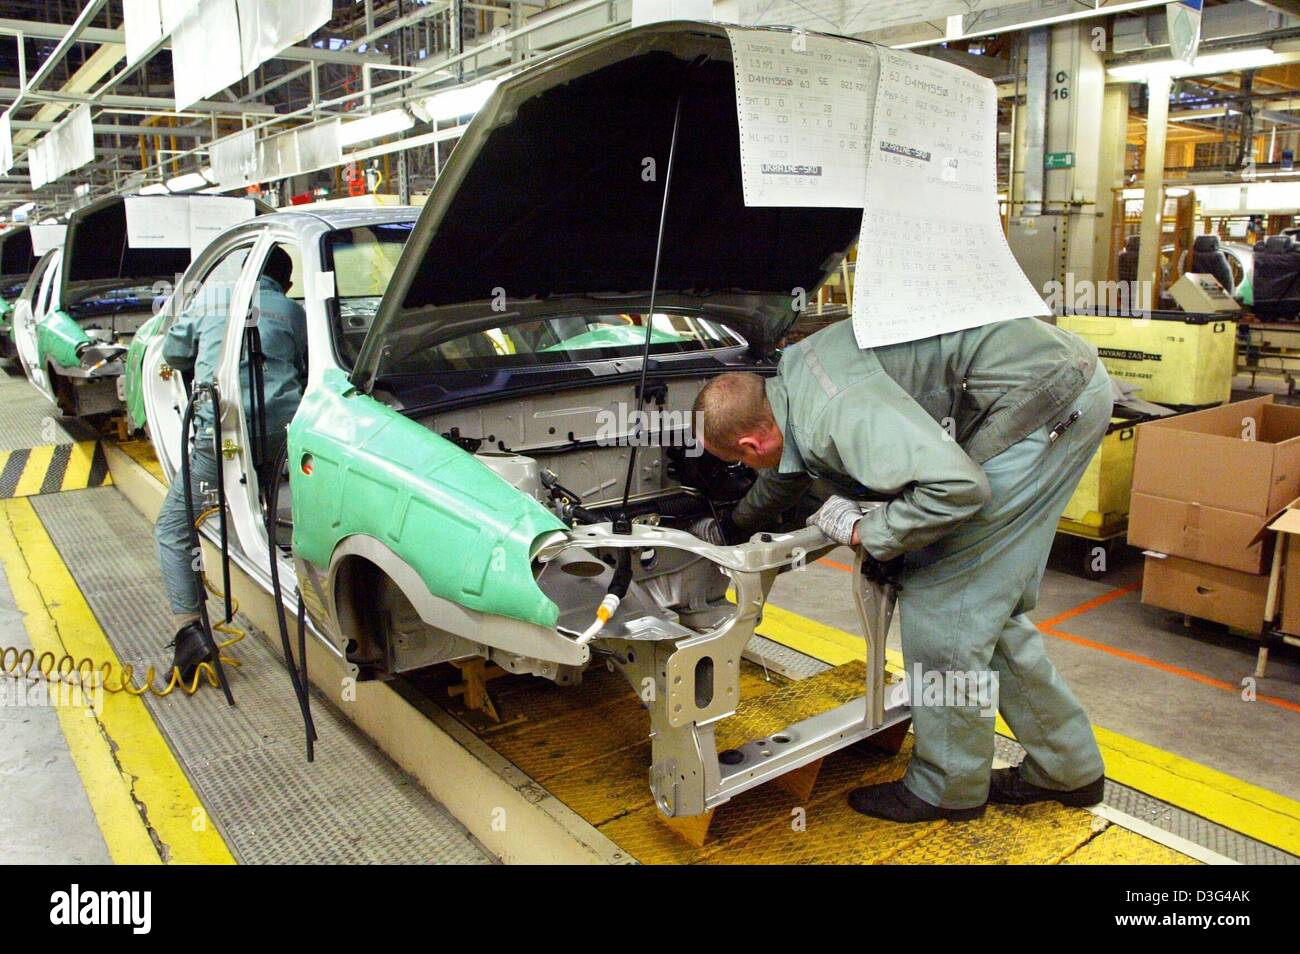 dpa) - Workers emble car body parts in a factory of the South ...